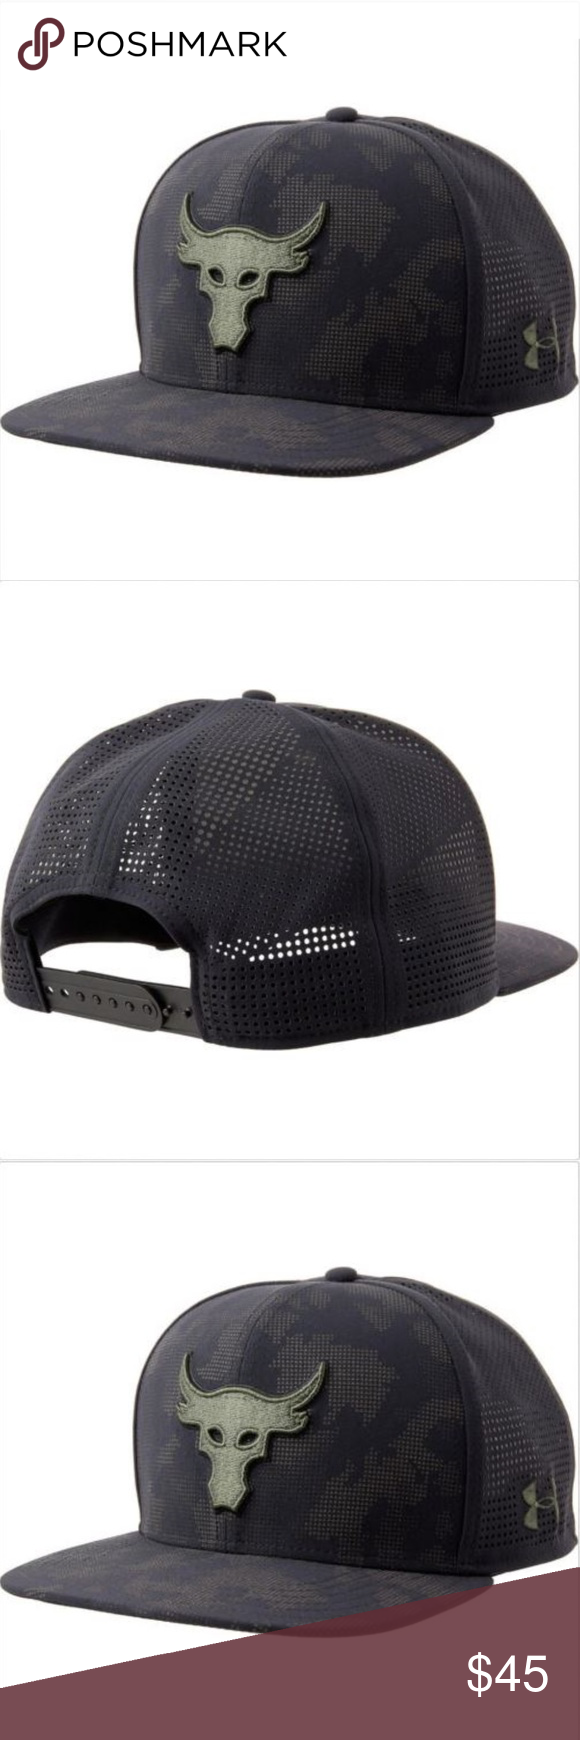 bb5716d3207 UA x Project Rock SuperVent Snapback Cap UA x Project Rock SuperVent  Snapback Cap UA Flat